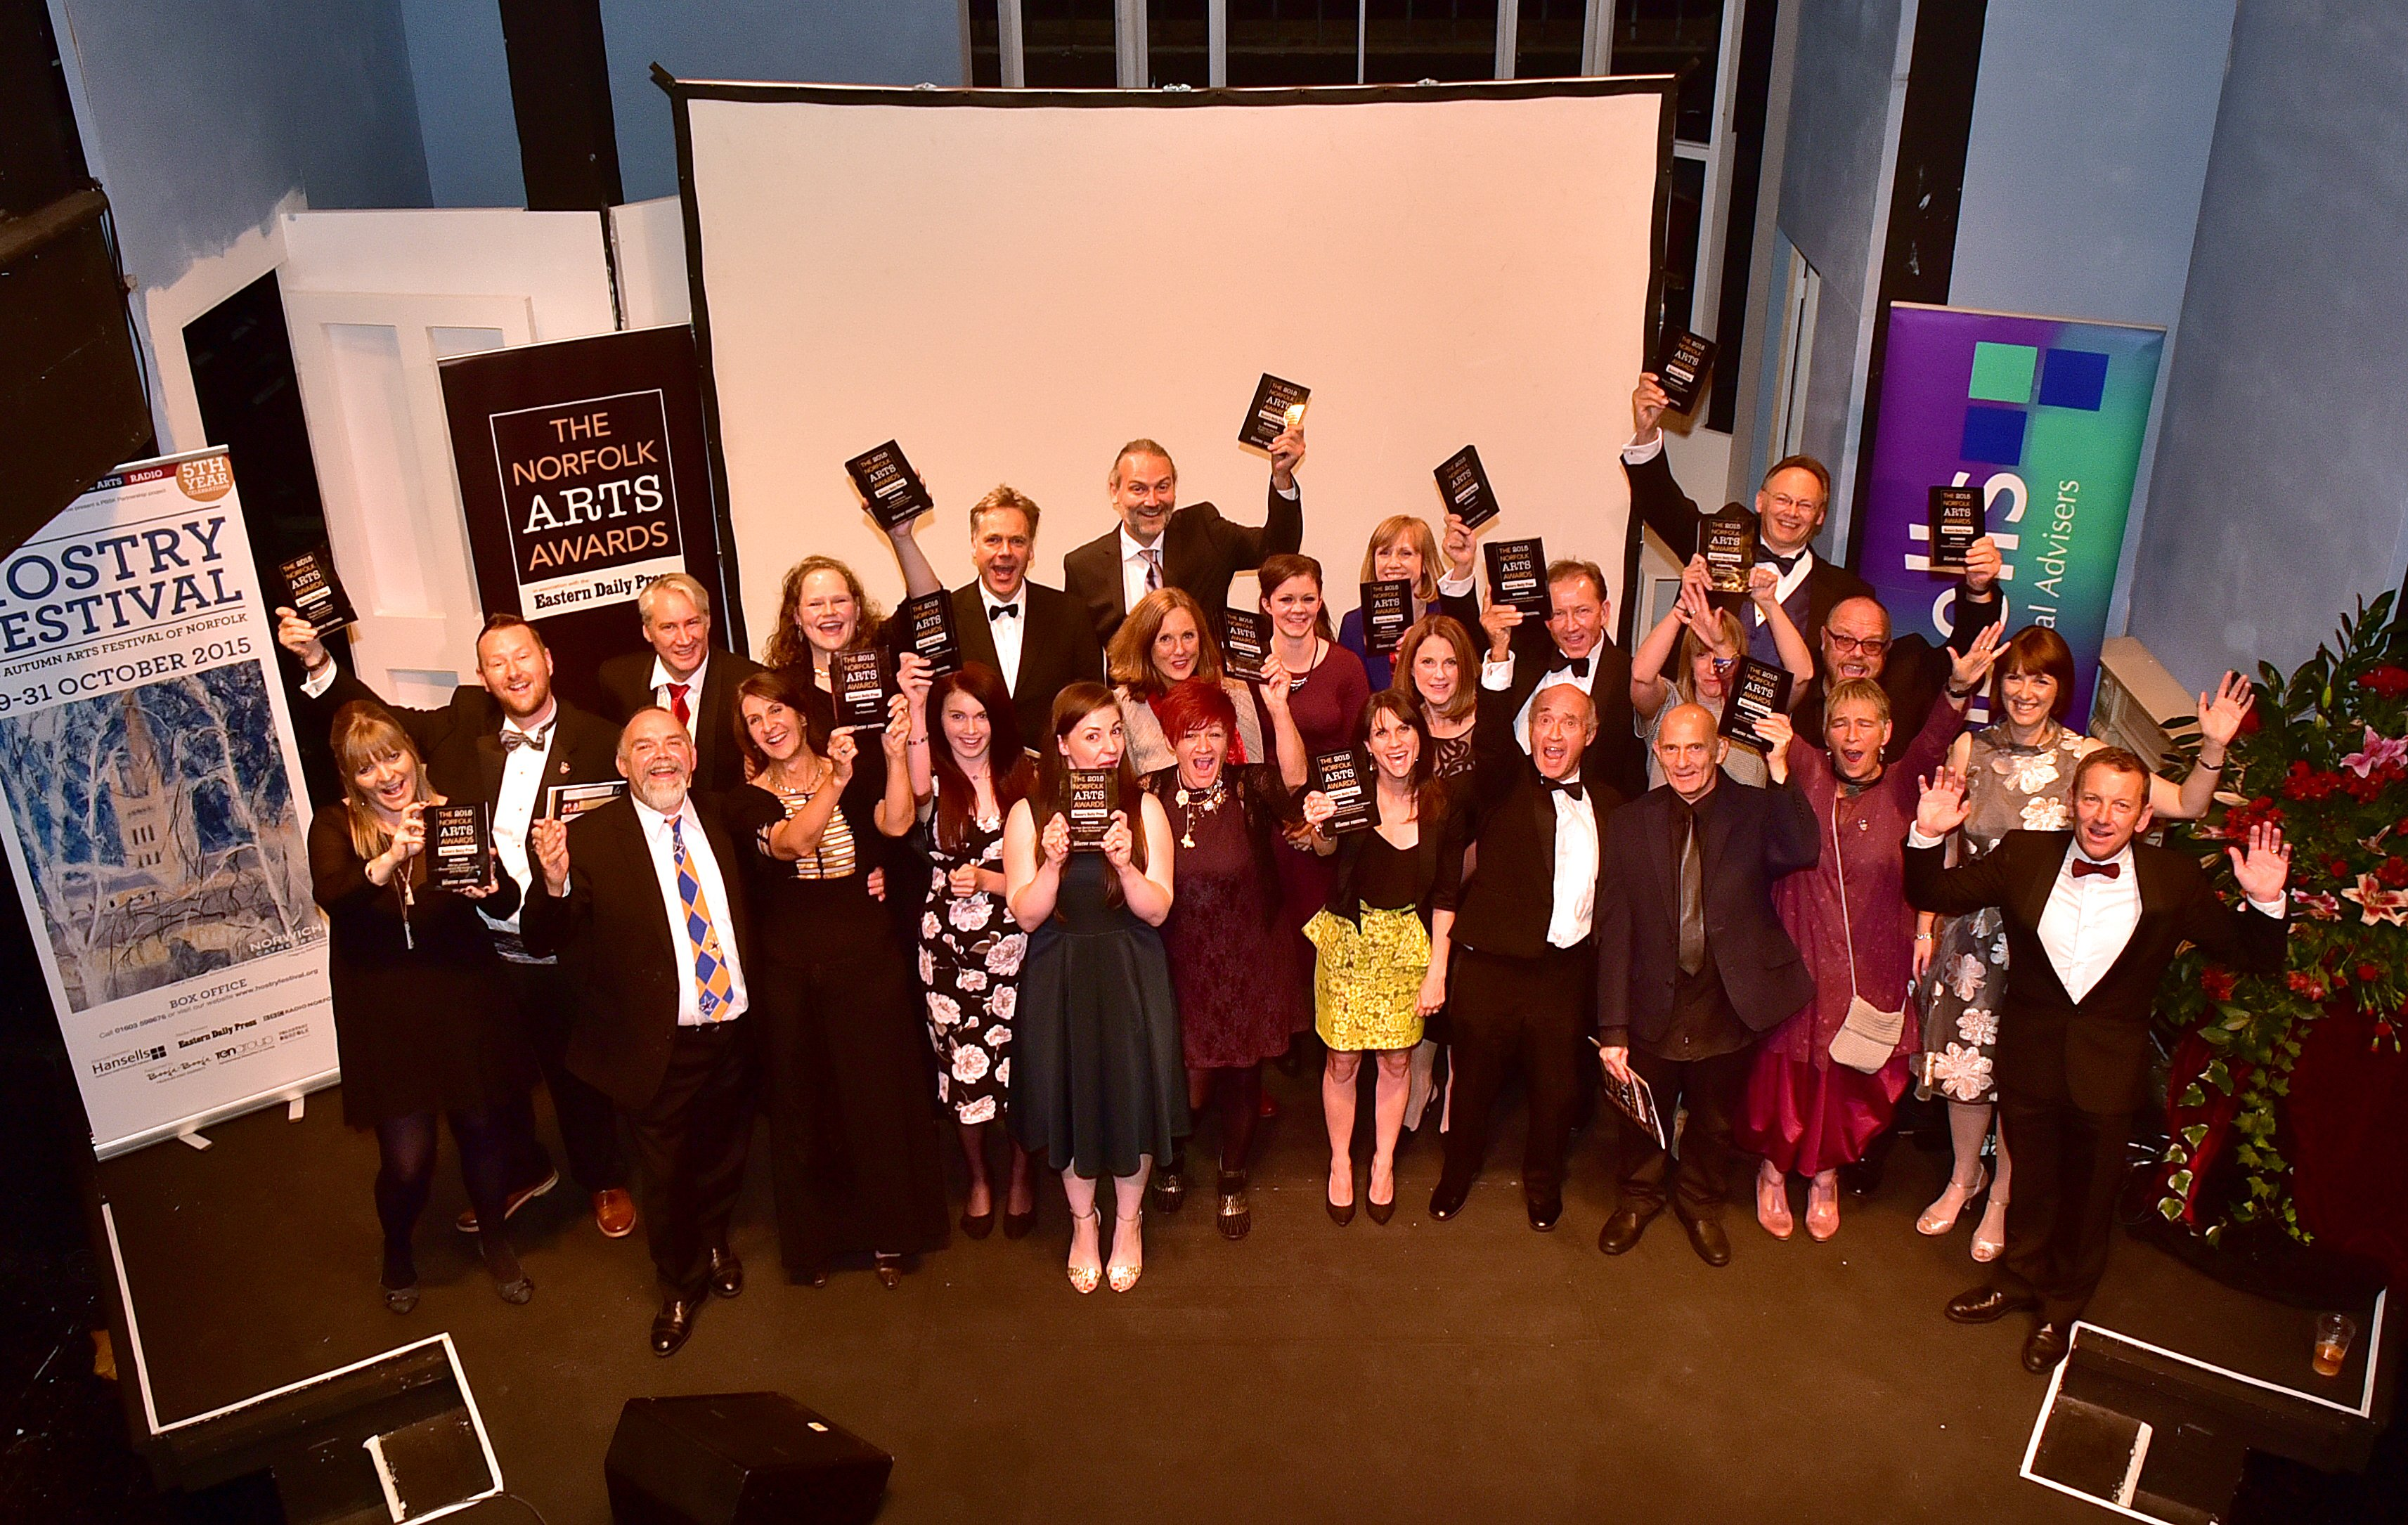 The 2015 Norfolk Arts Awards at The Maddermarket Theatre. The winners. Picture: ANTONY KELLY